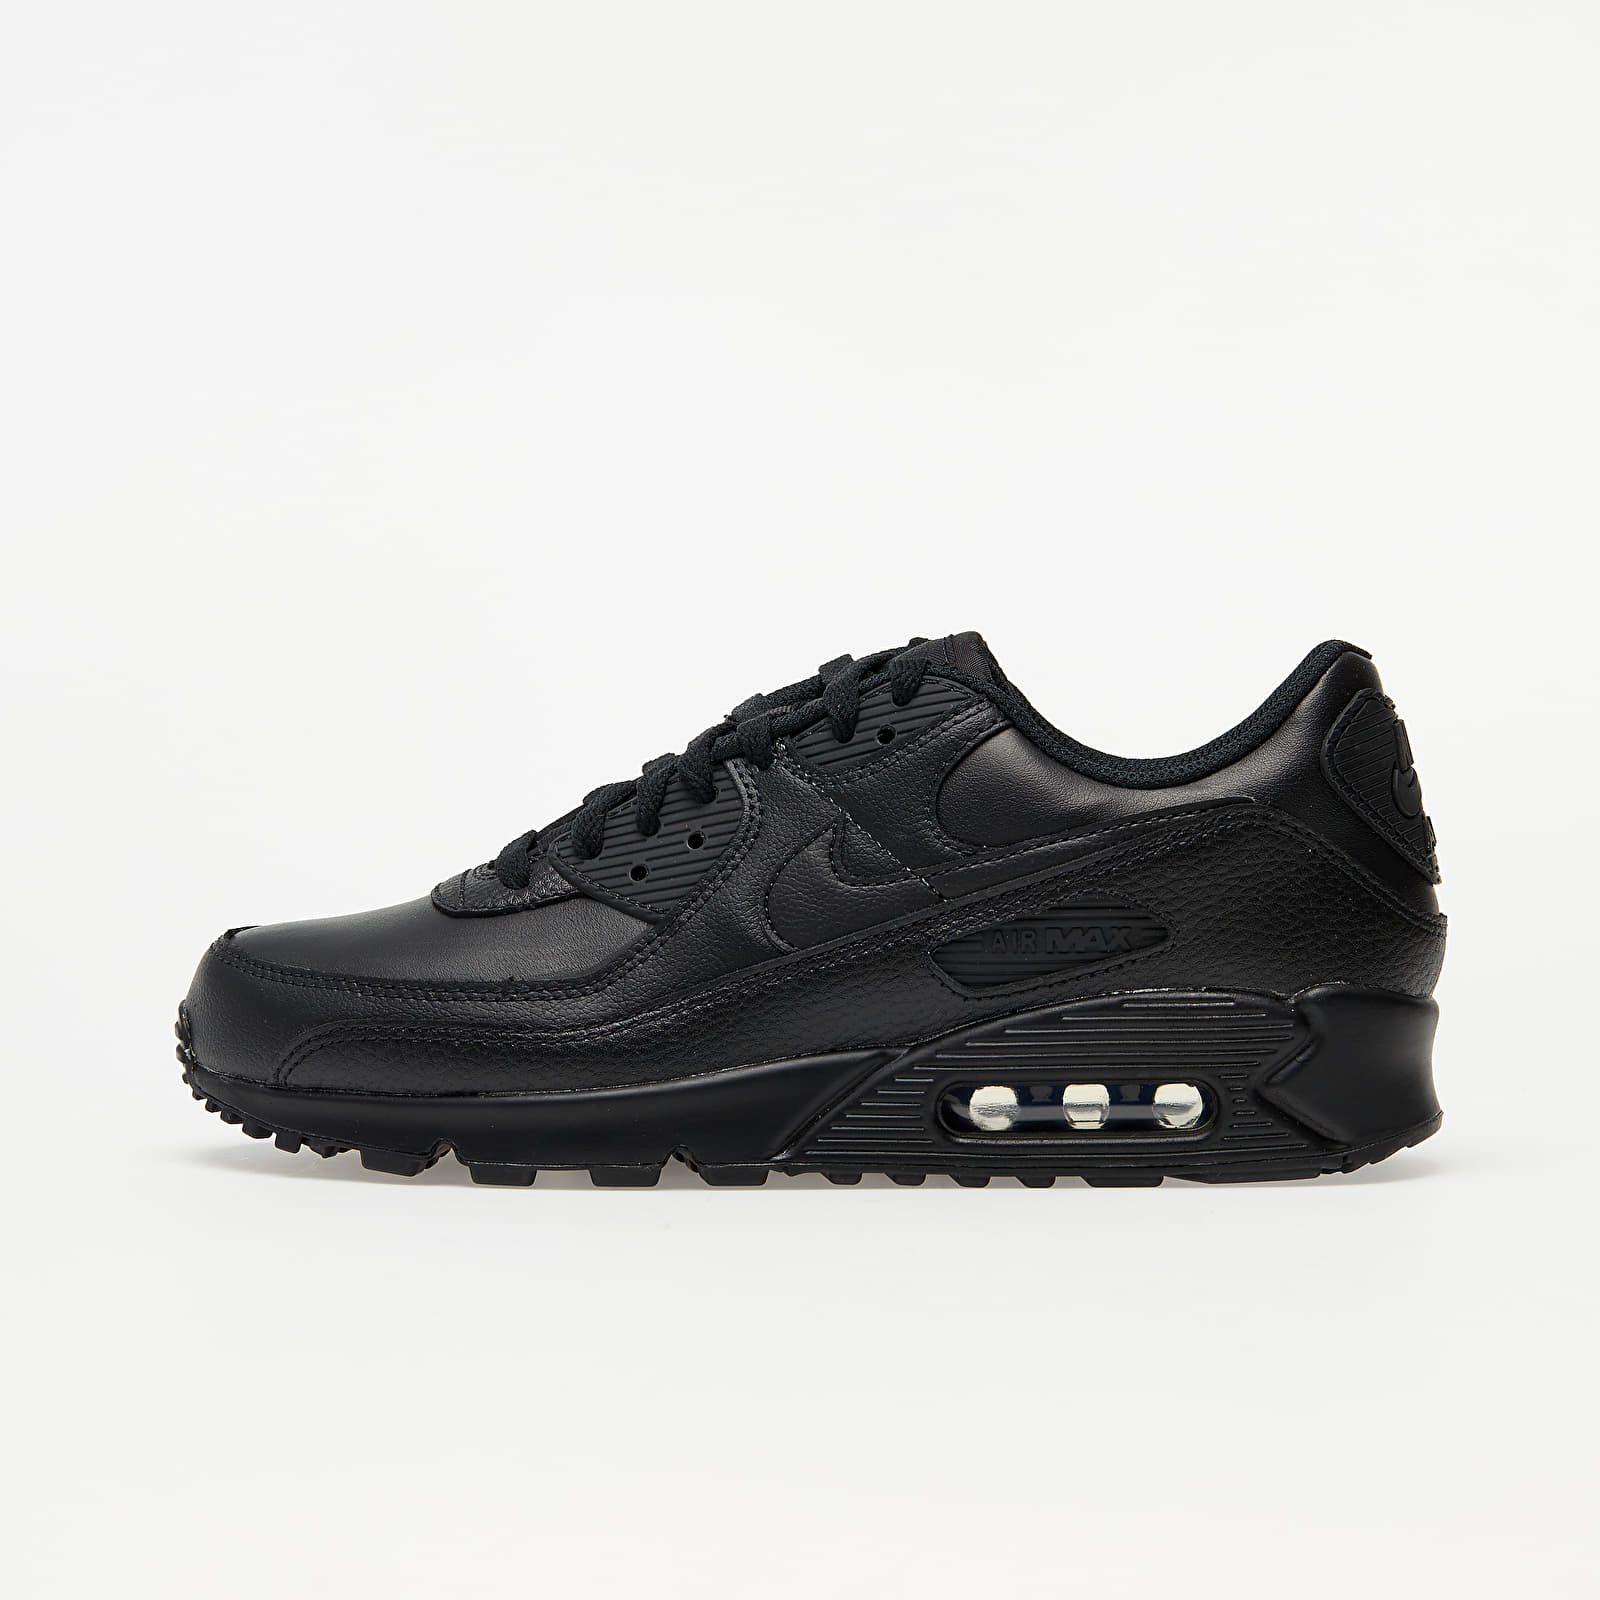 Nike Air Max 90 Leather Black/ Black-Black EUR 41